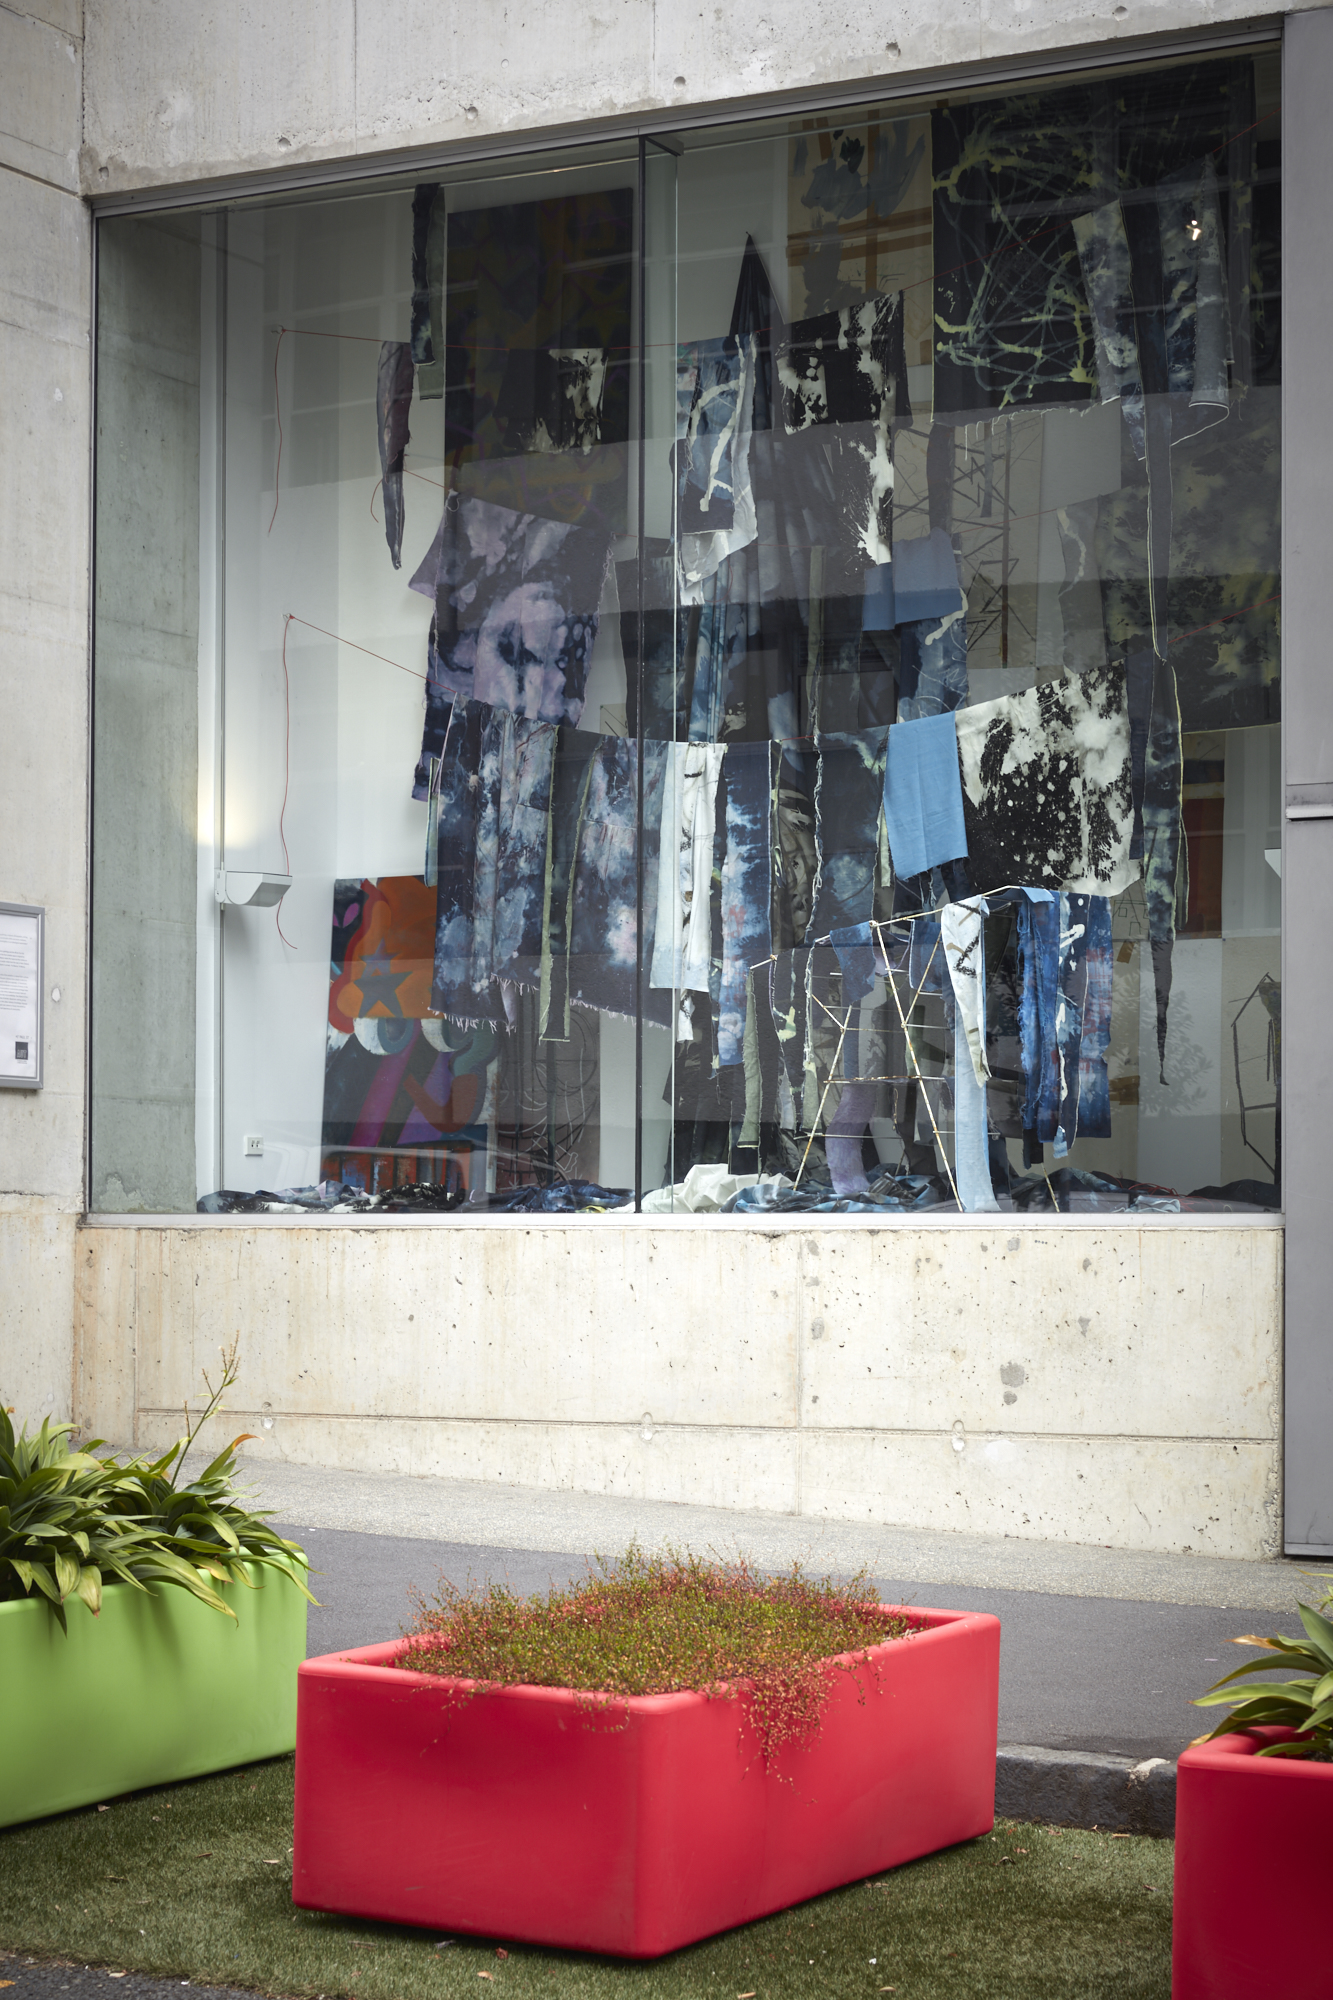 denim artwork, hanging in window. Photograph taken from street view